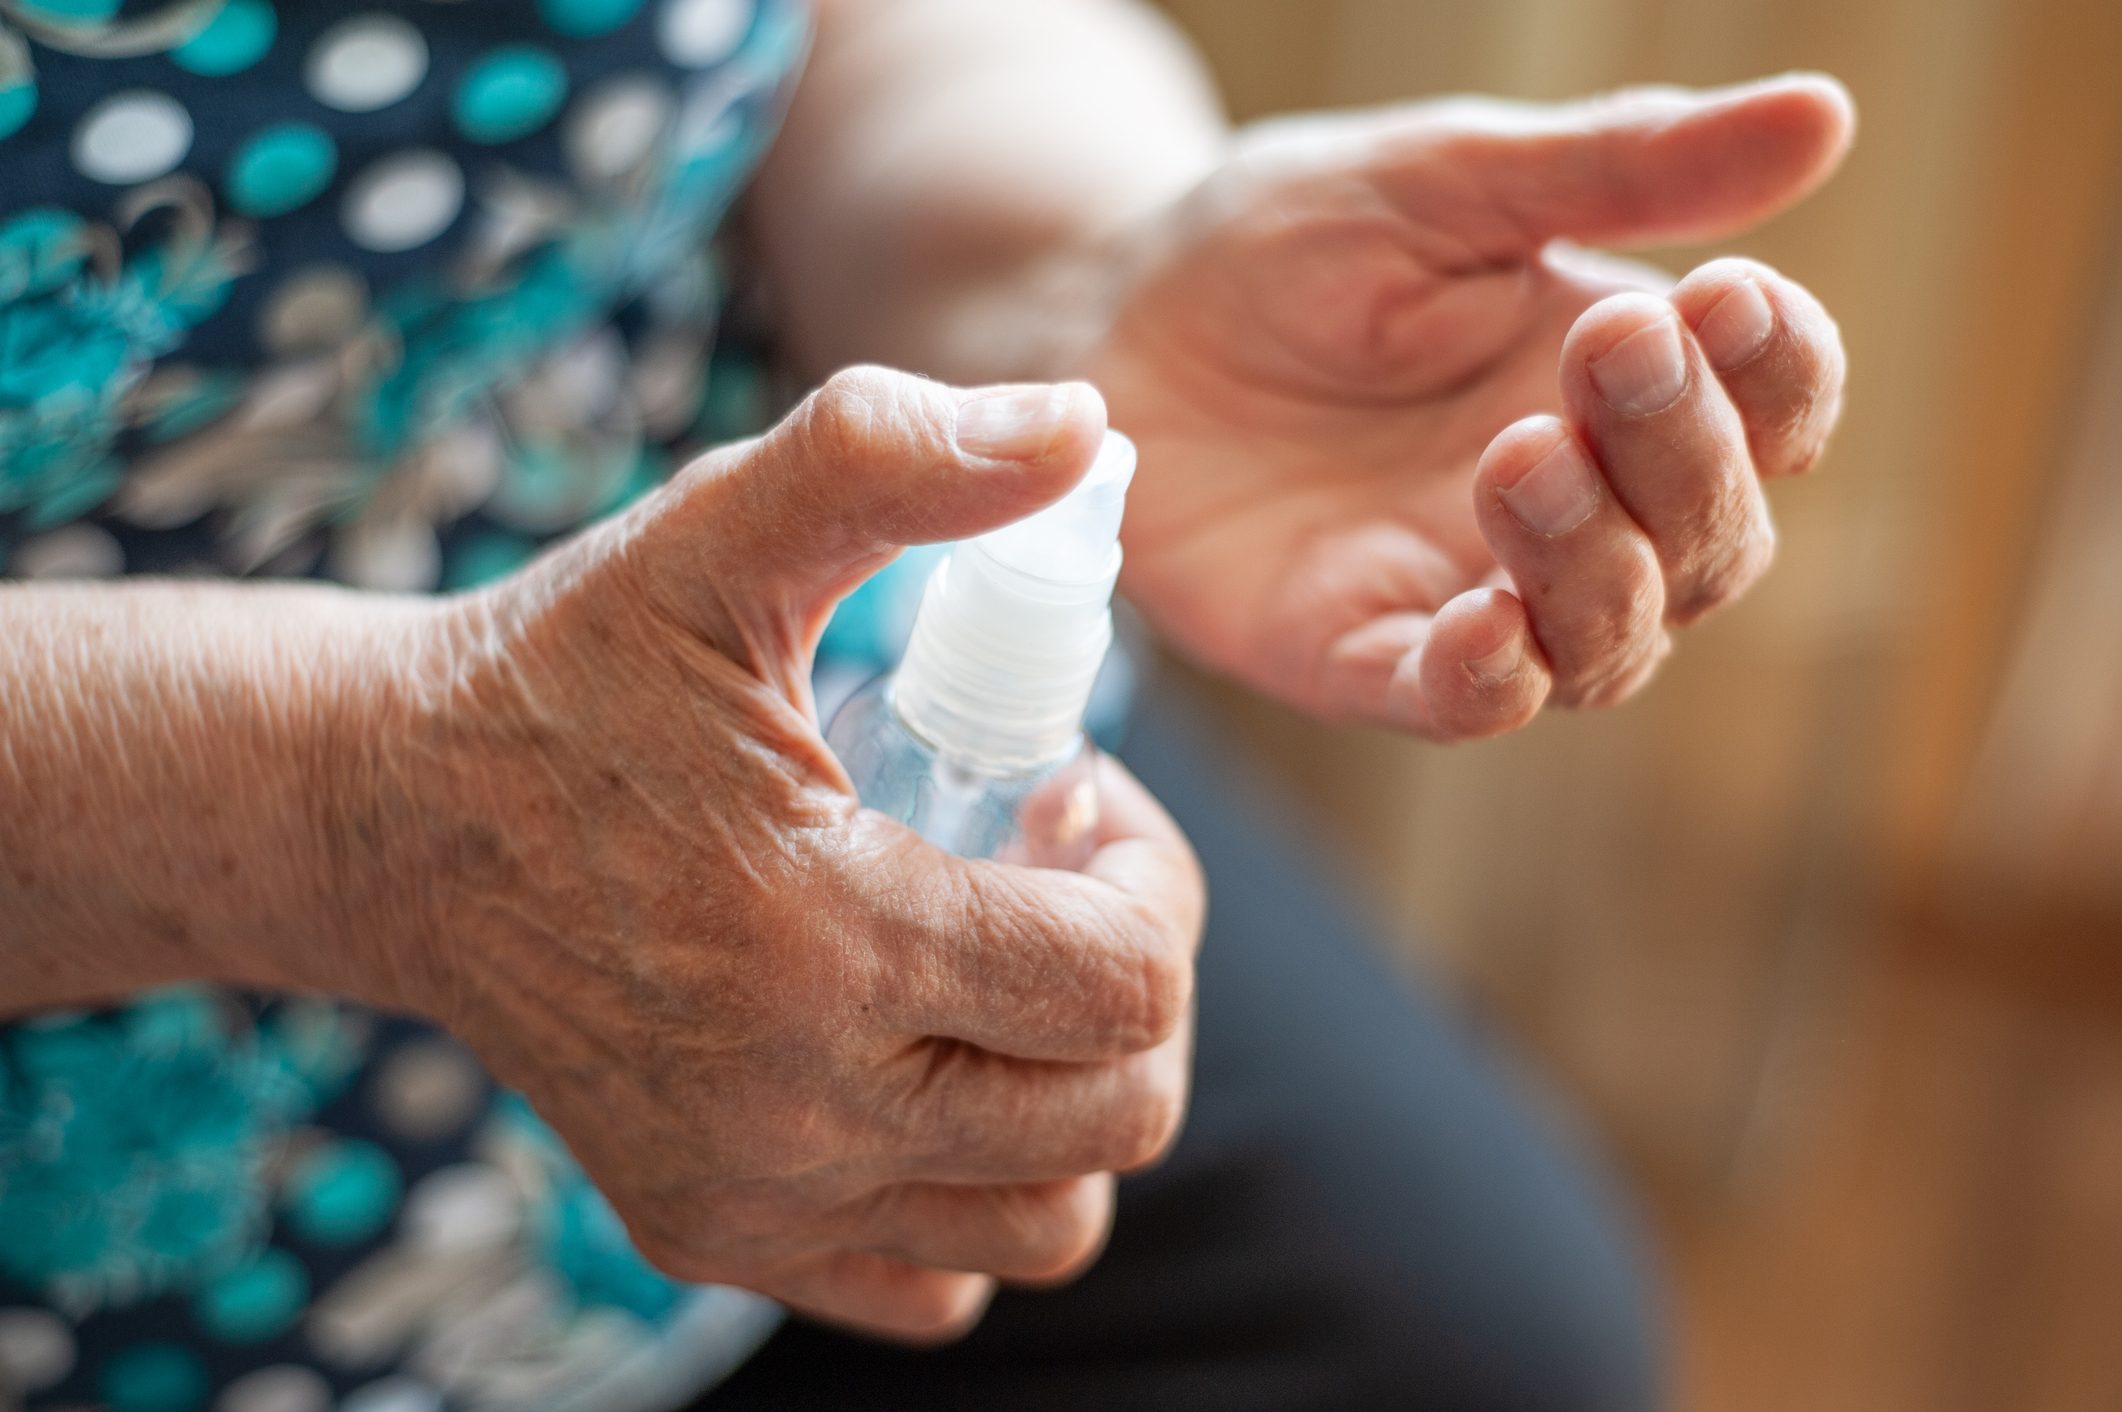 Coronavirus Covid-19 old woman applies a sanitizer on her hands, prevention, quarantine